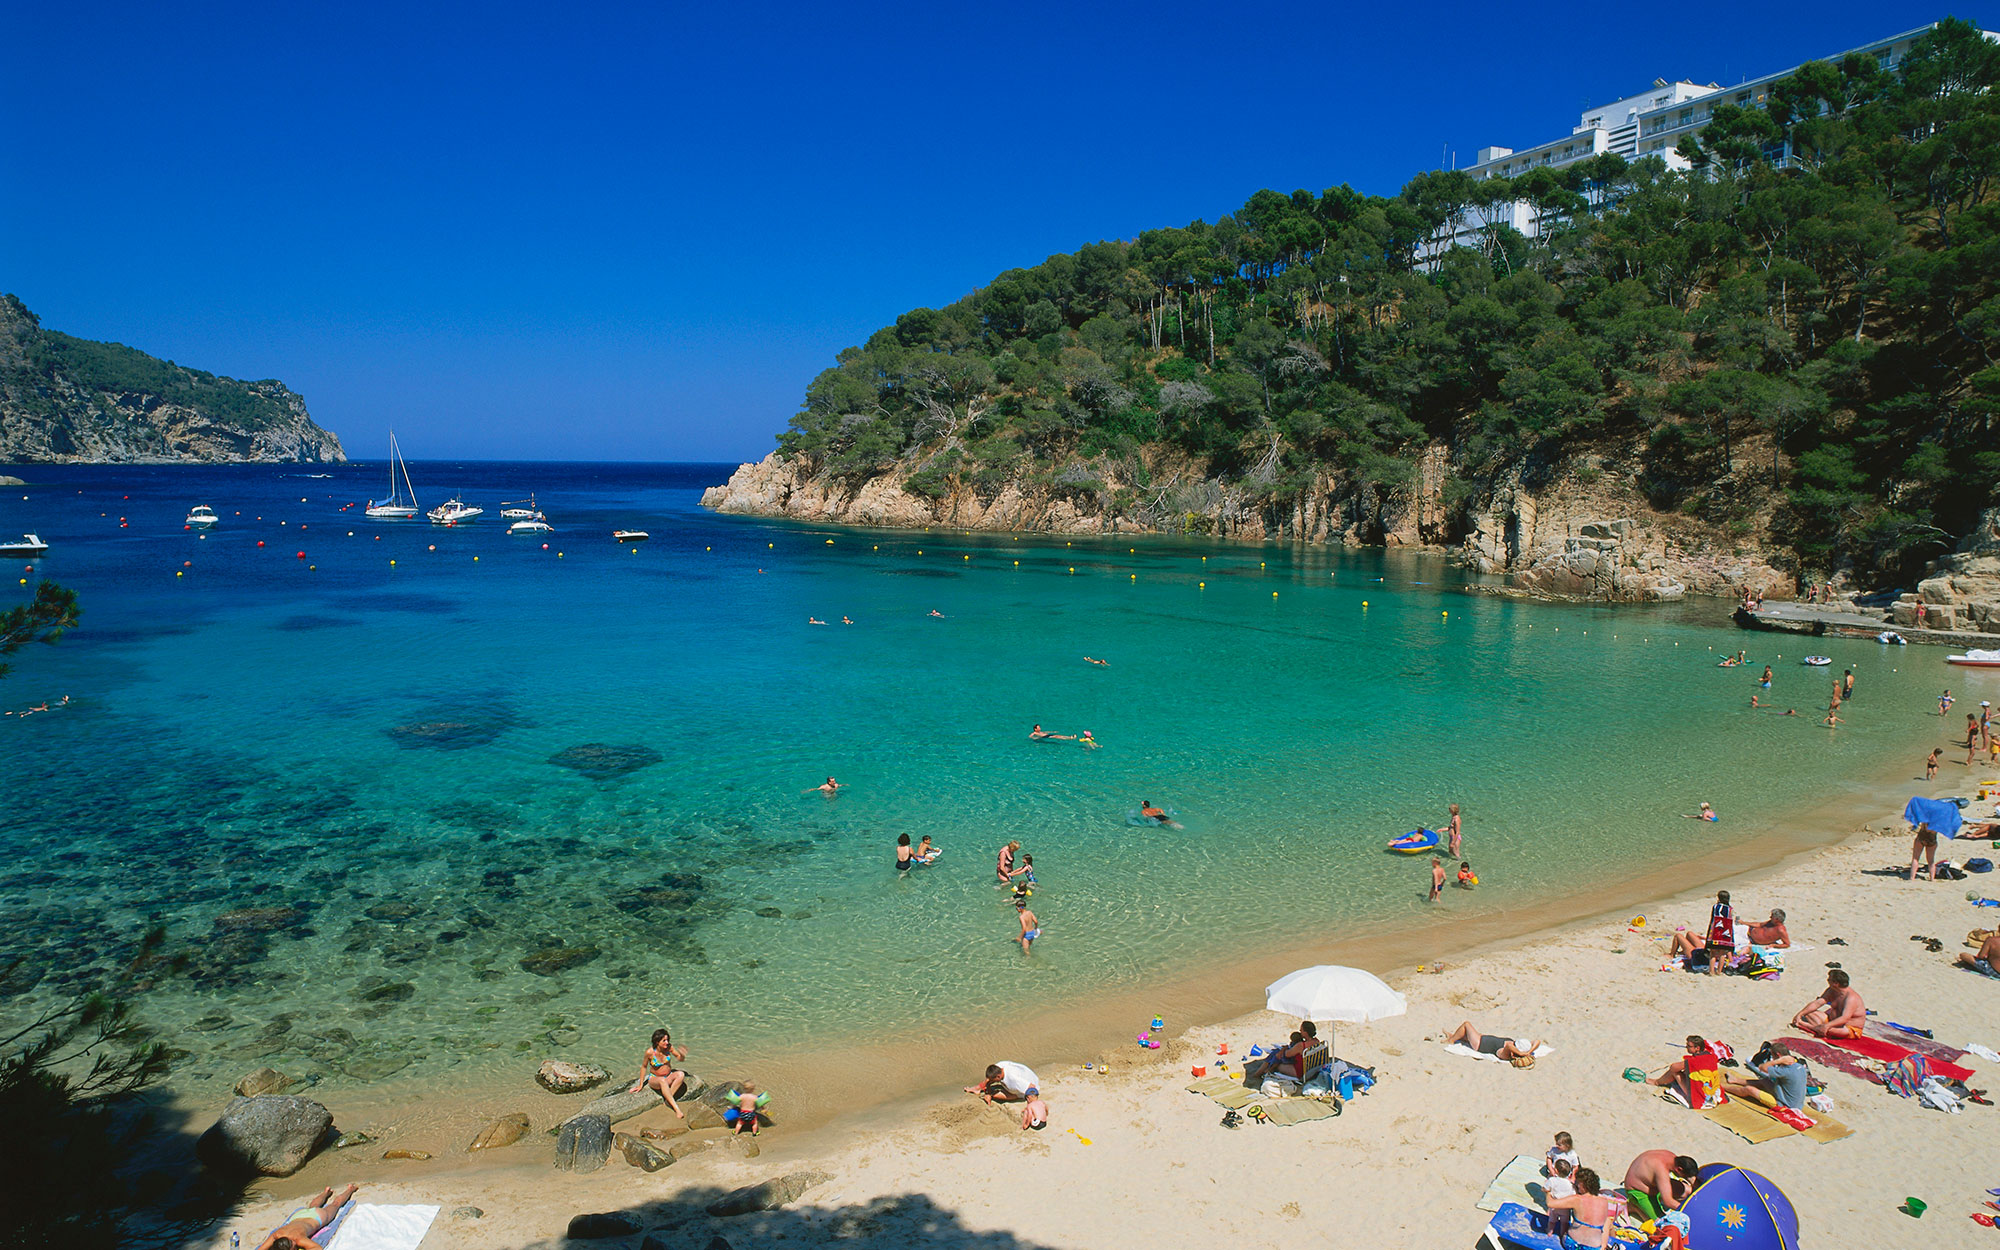 British Expats in Spain beach life